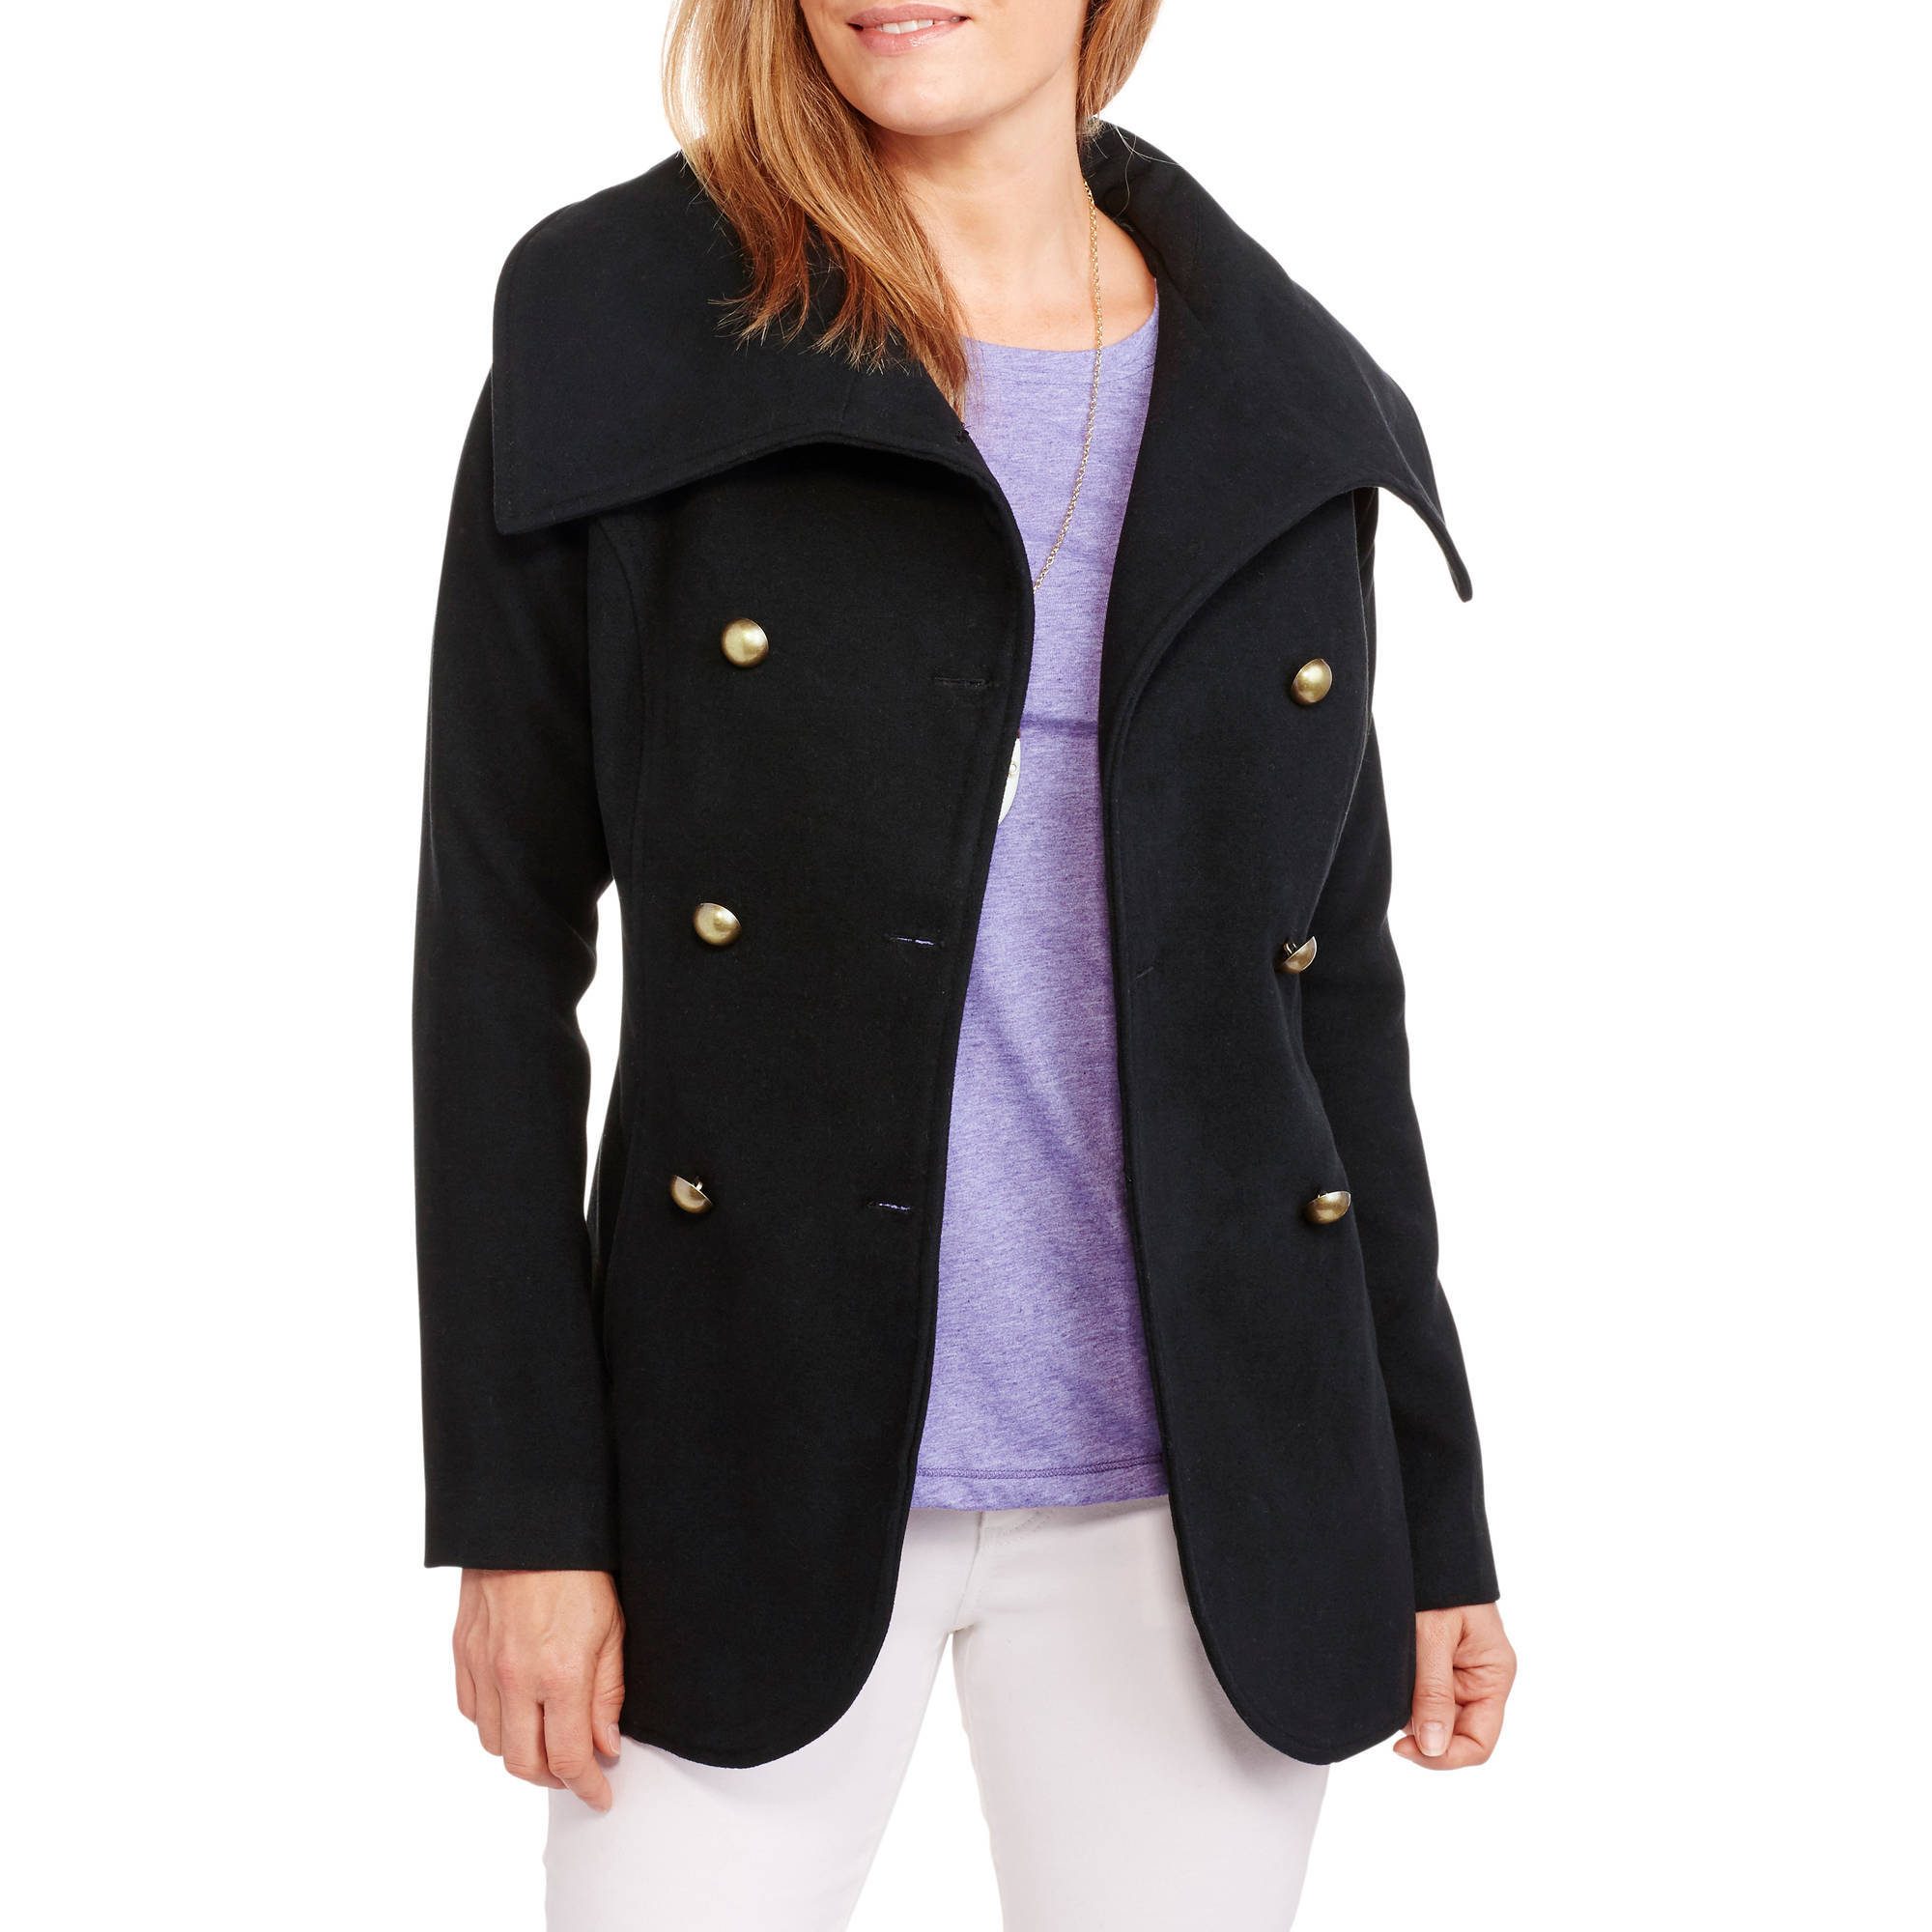 Maxwell Studio Women's Tulip Faux Wool Double-Breasted Peacoat